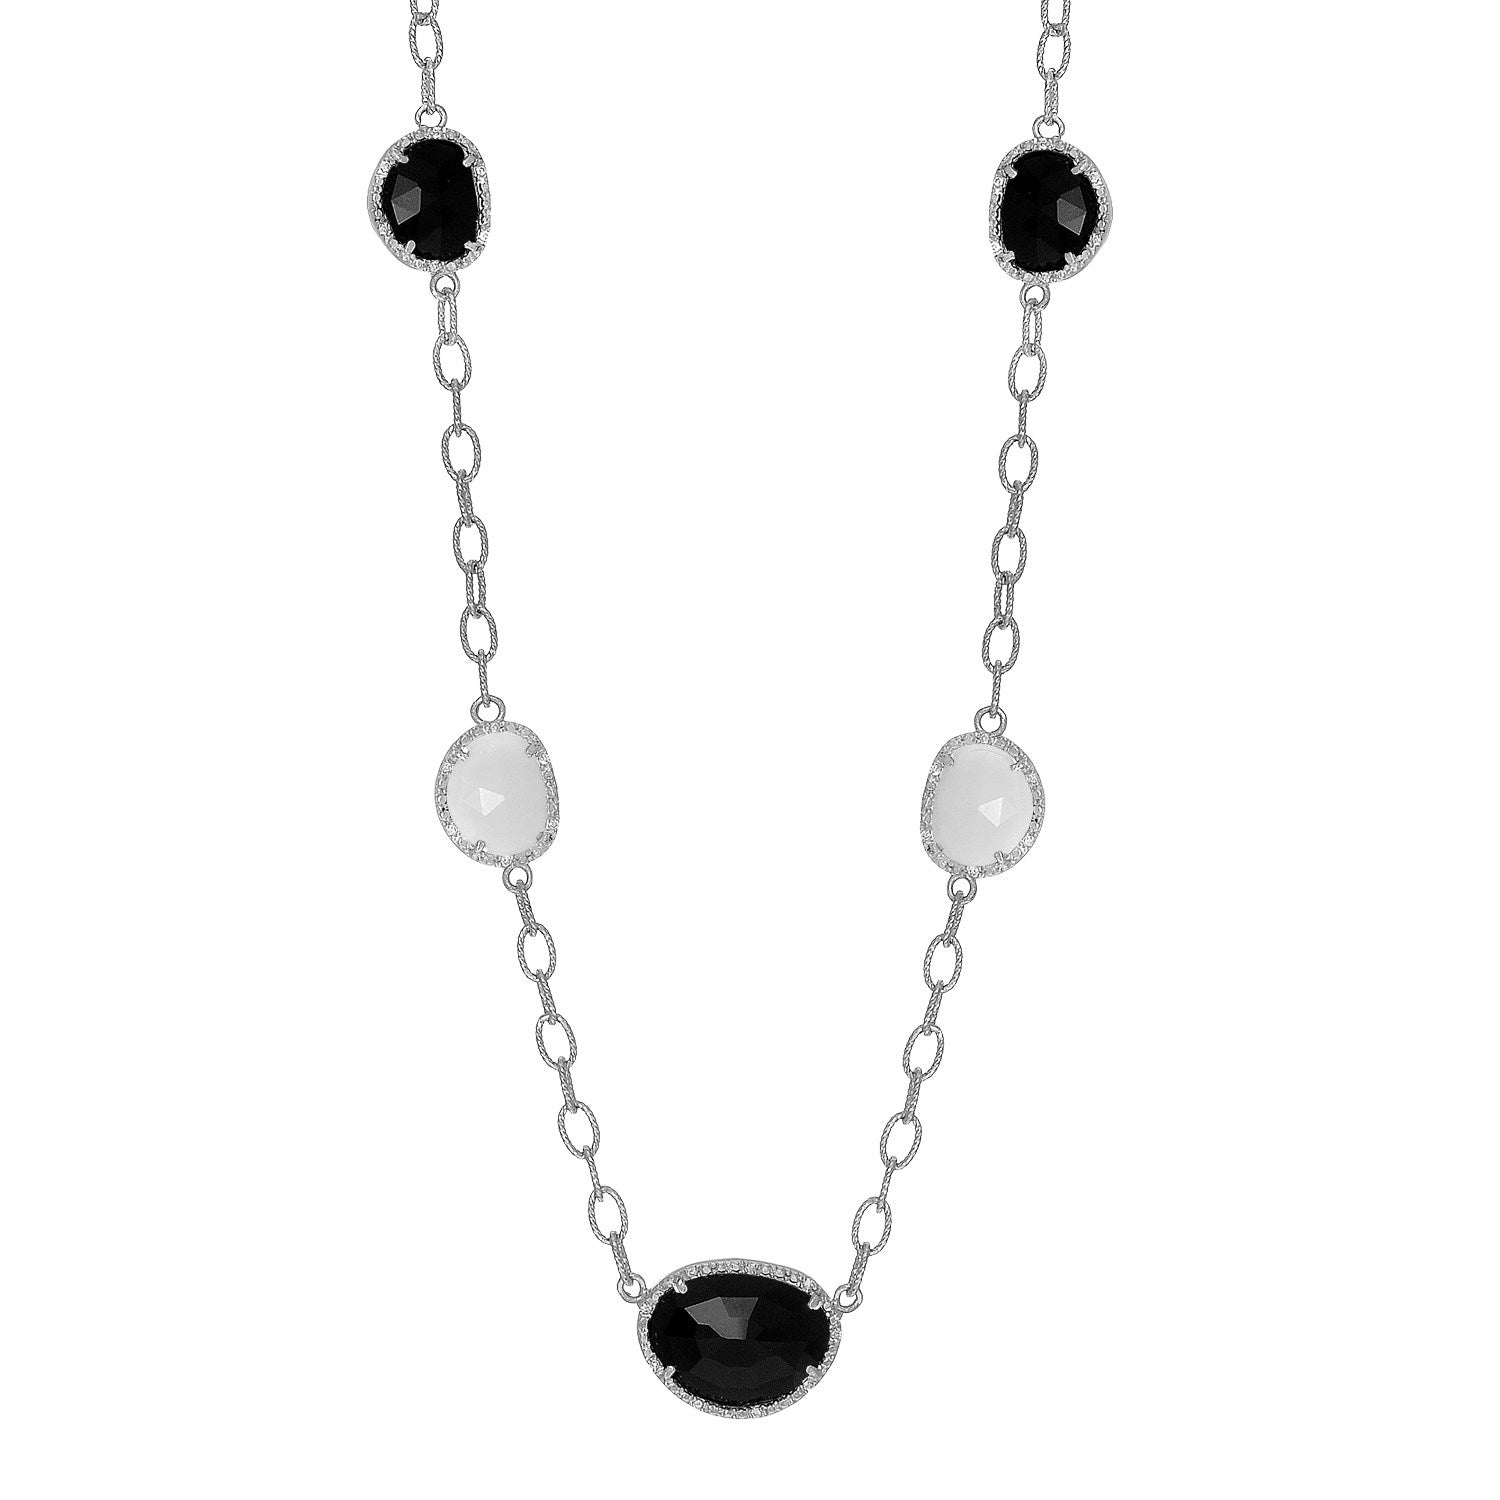 Unique Hollywood Style Sterling Silver Diamond Embellished Black and White Agate Necklace